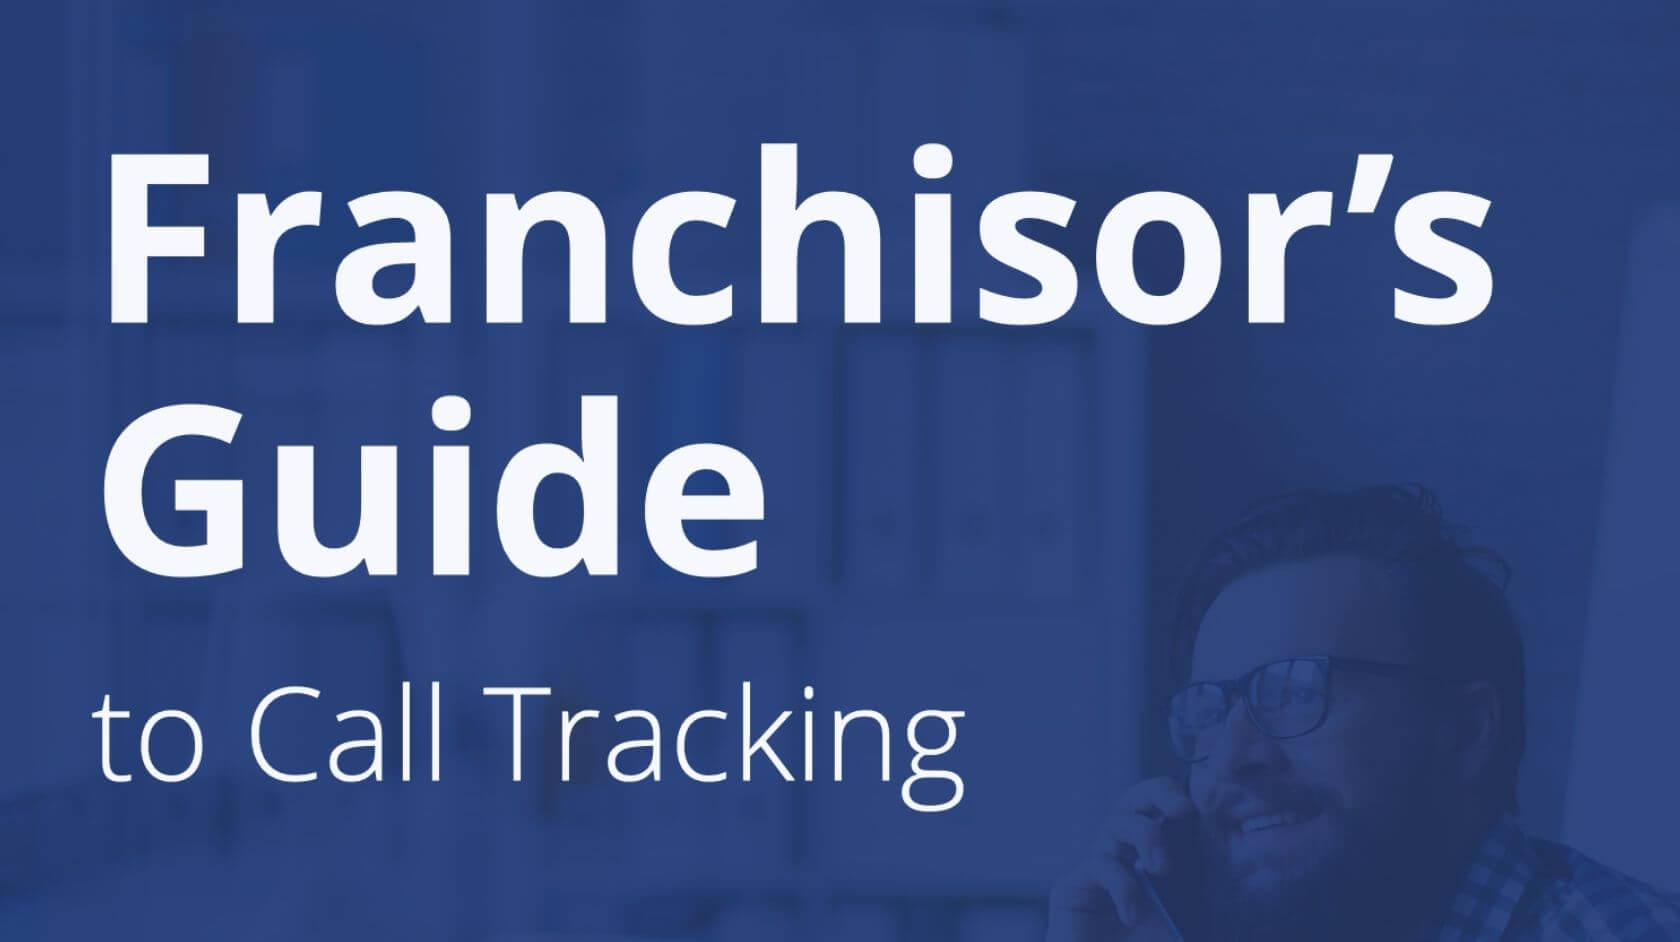 Franchisors Guide to Call Tracking